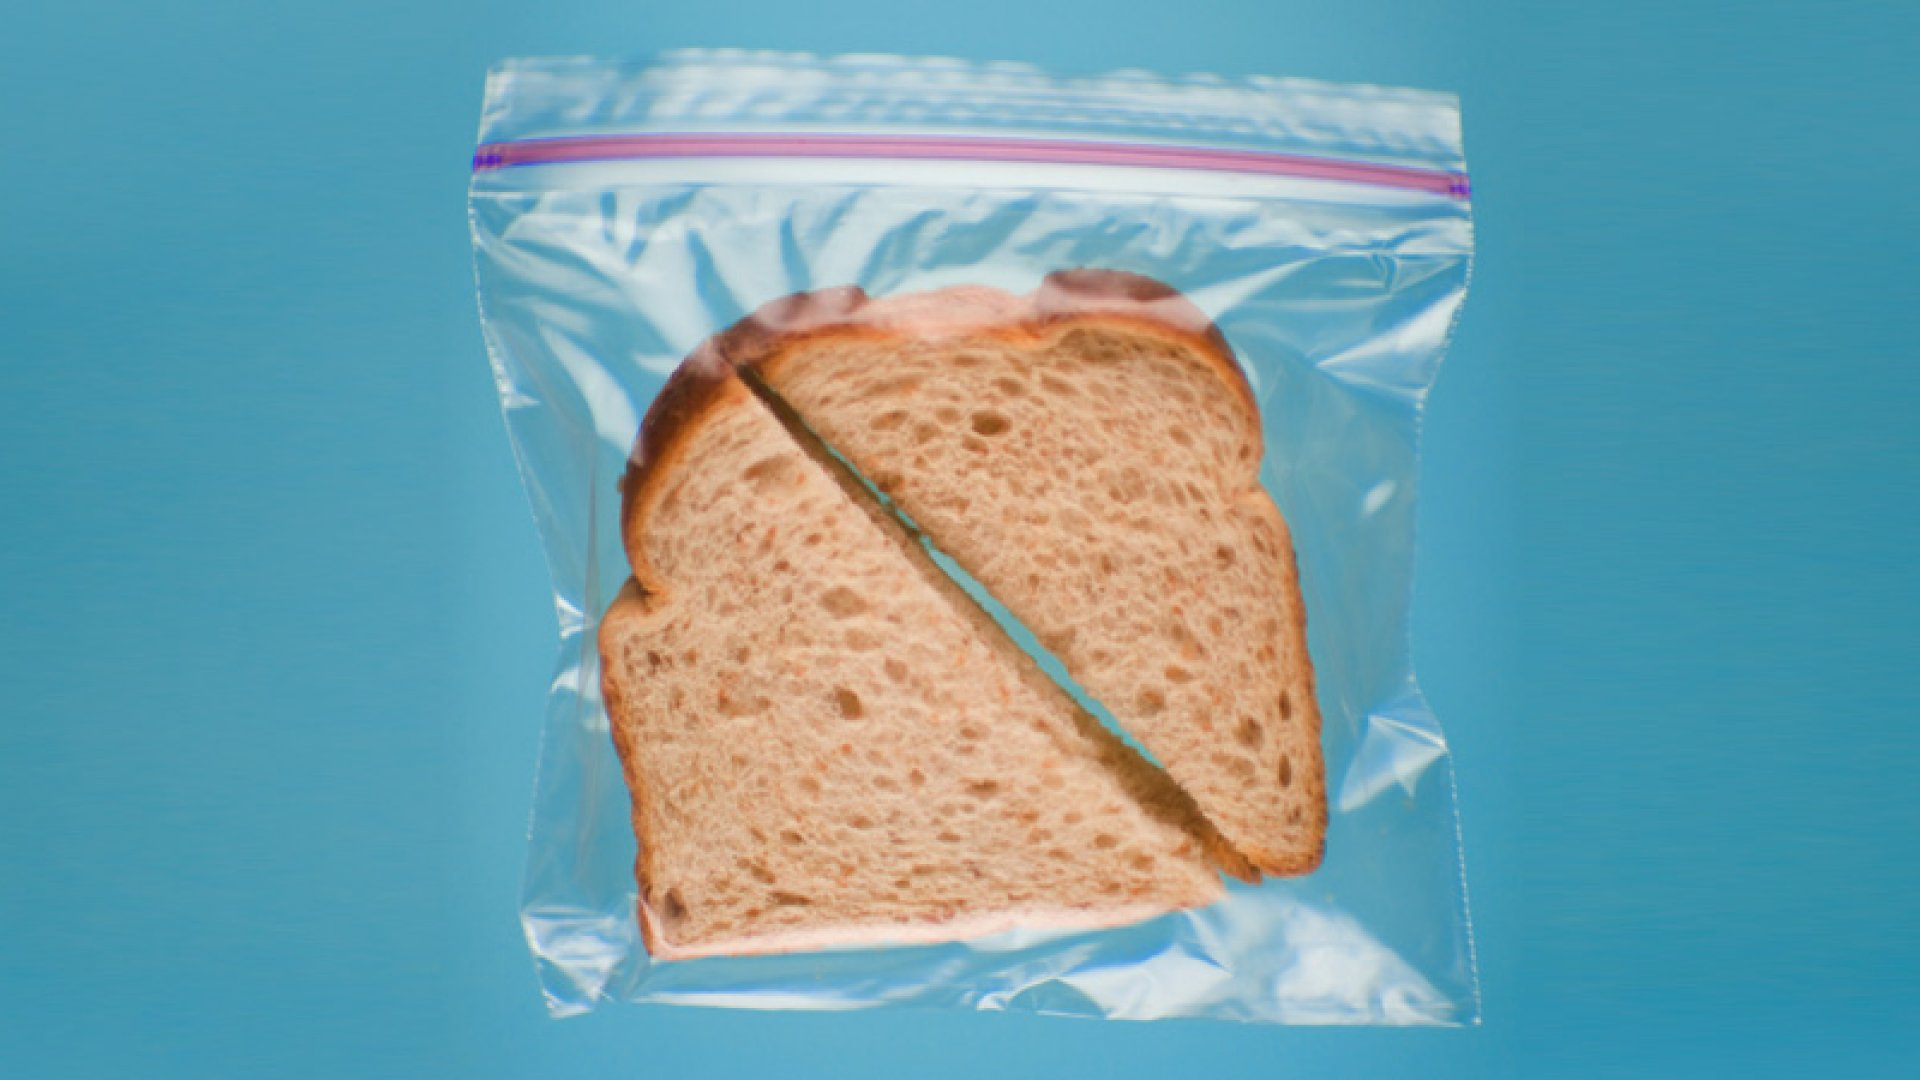 What the Ziploc Bag Can Teach Us About Innovation